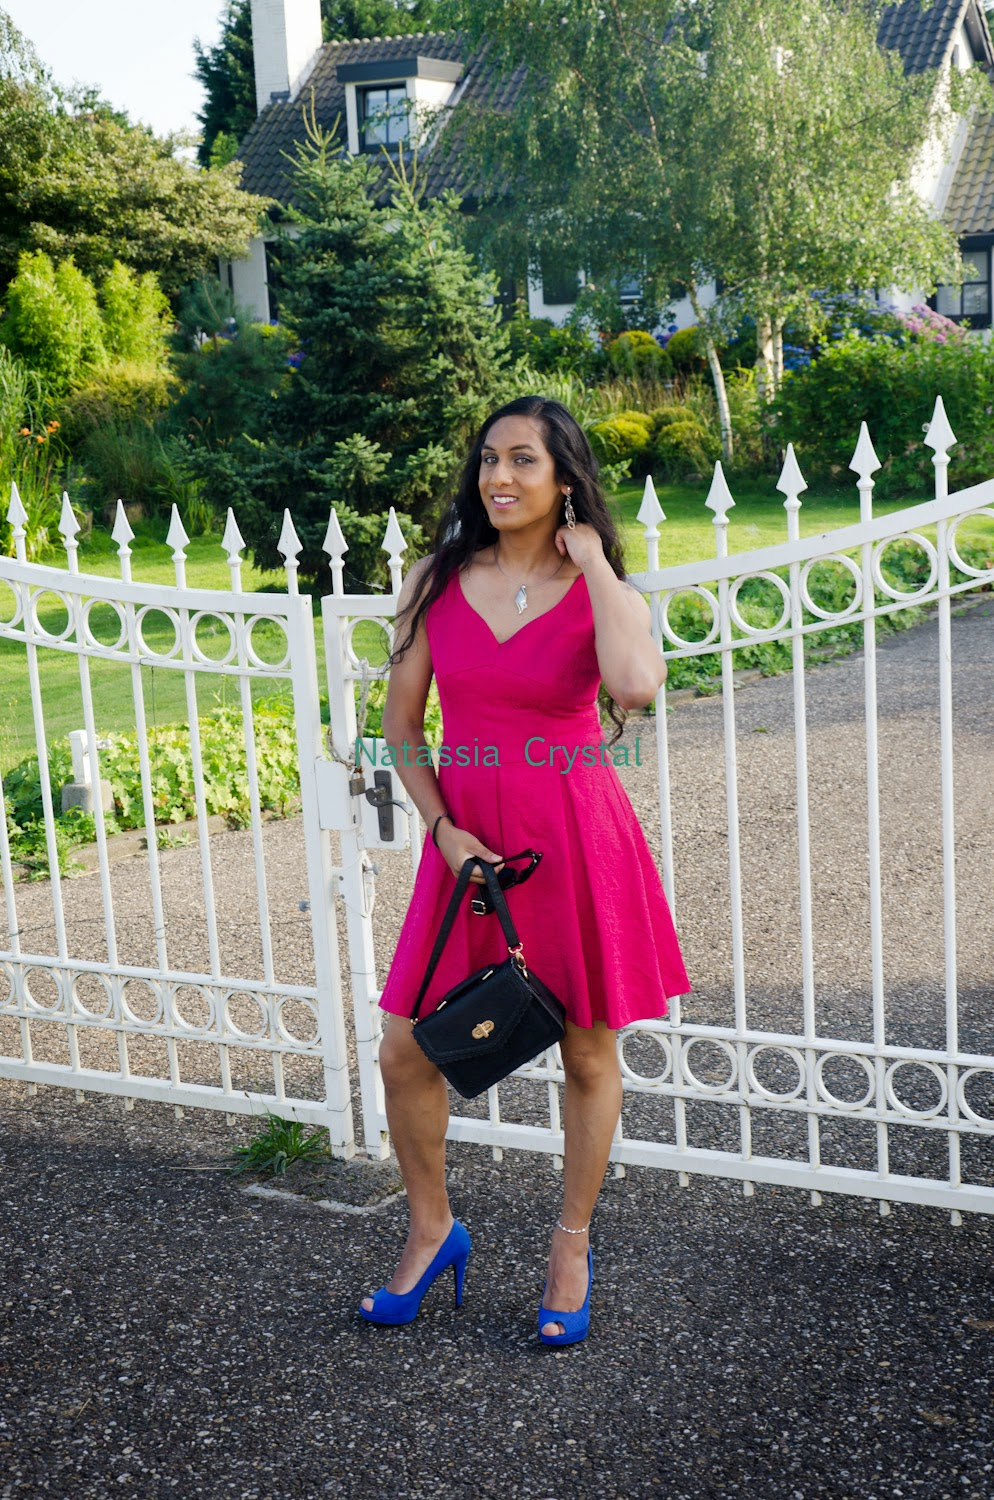 Natassia pink dress blue heels white gate